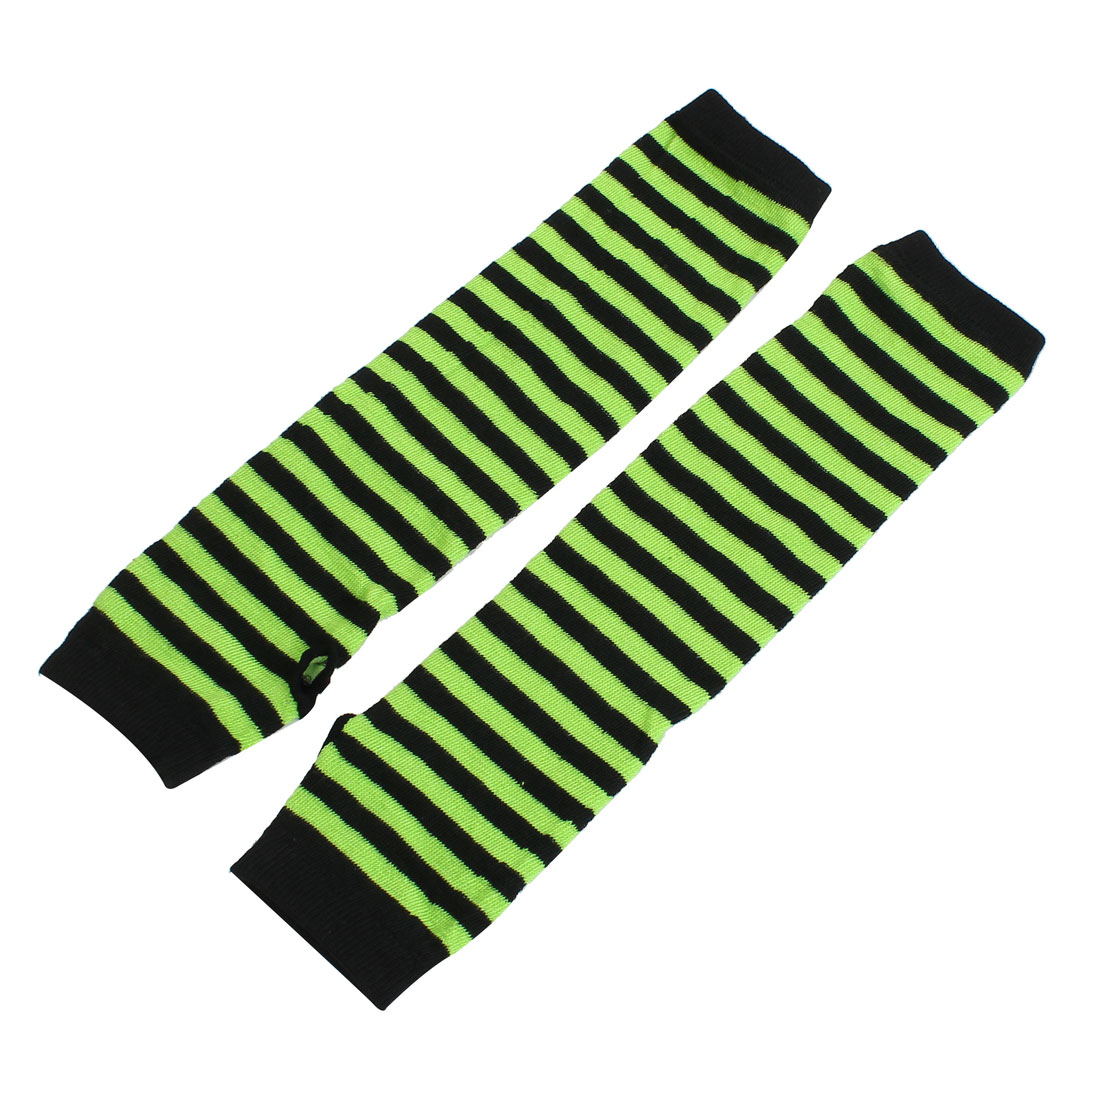 Lady Winter Elbow Length Stretchy Fingerless Arm Warmers Gloves Black Green Pair